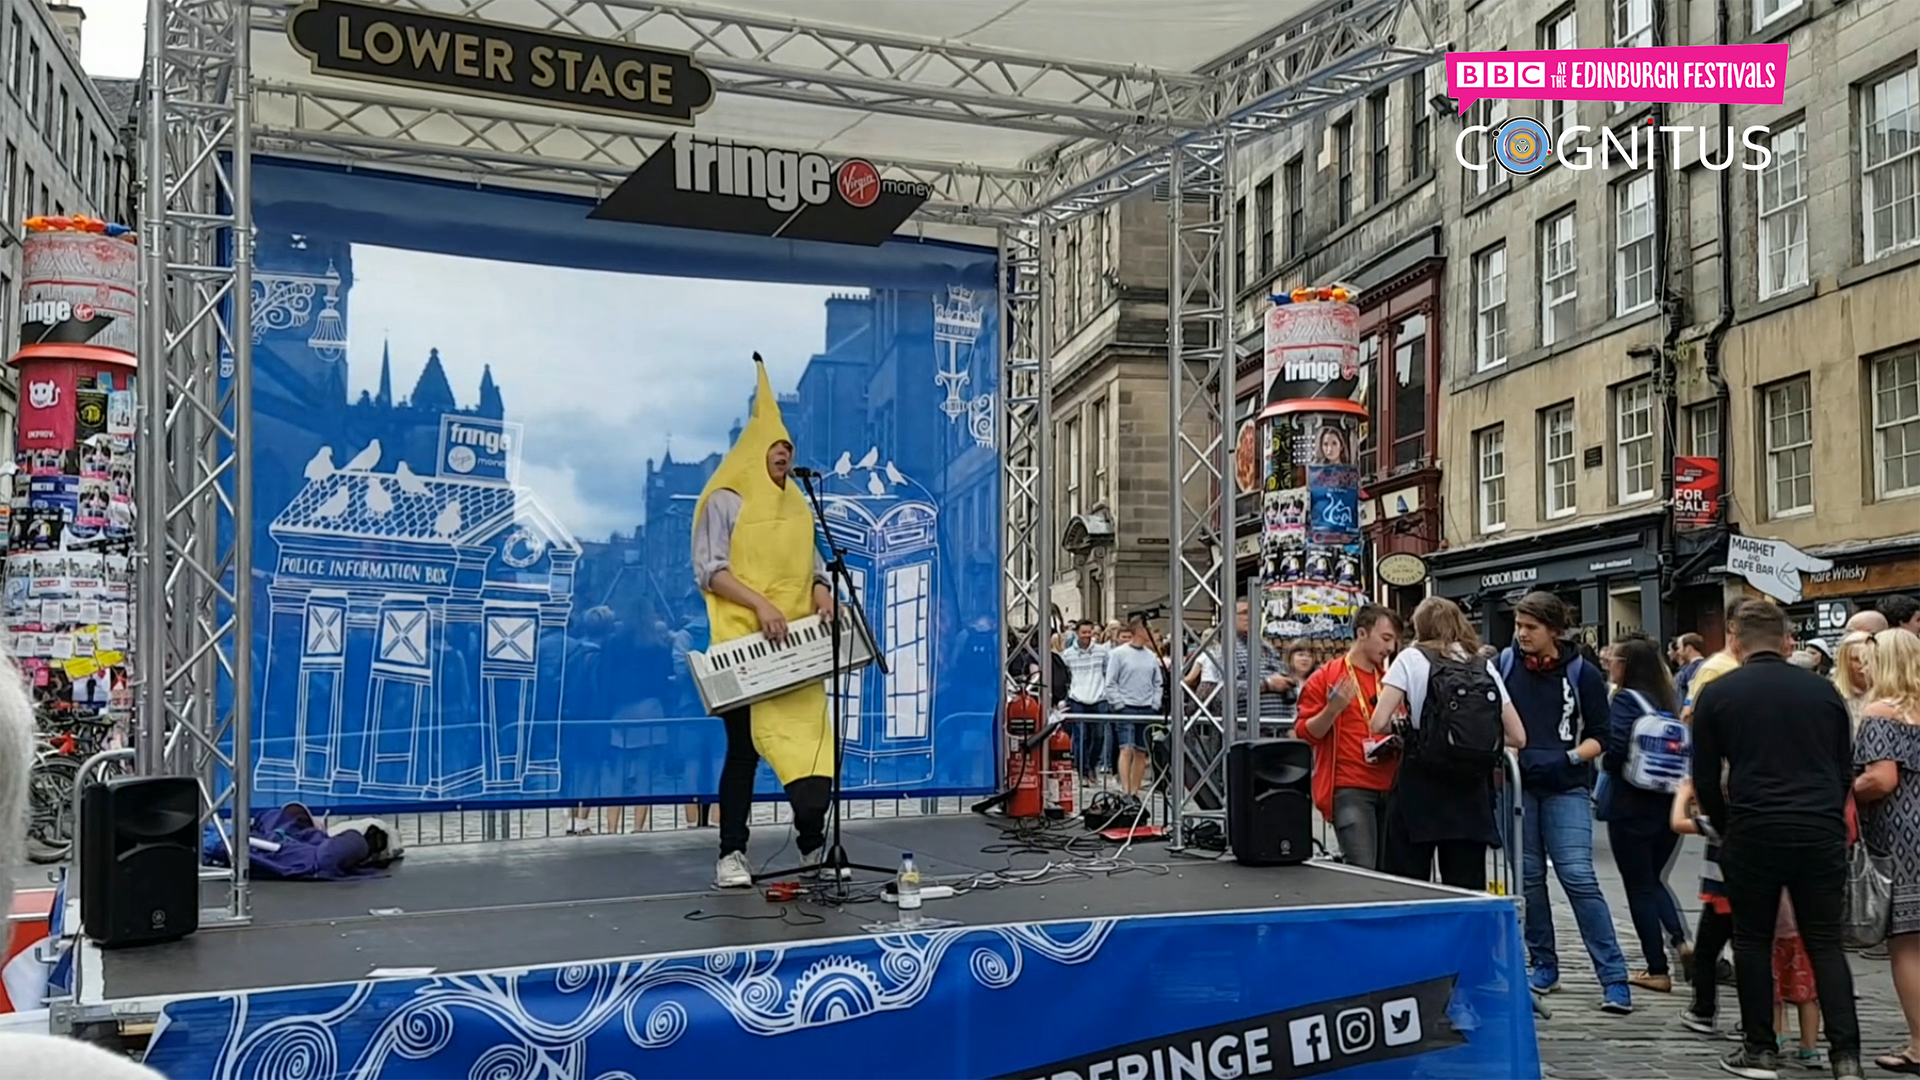 An image taken fro the video shoot trials of COGNITUS at the Edinburgh Festival - a man is dressed as a banana, playing the keyboard.